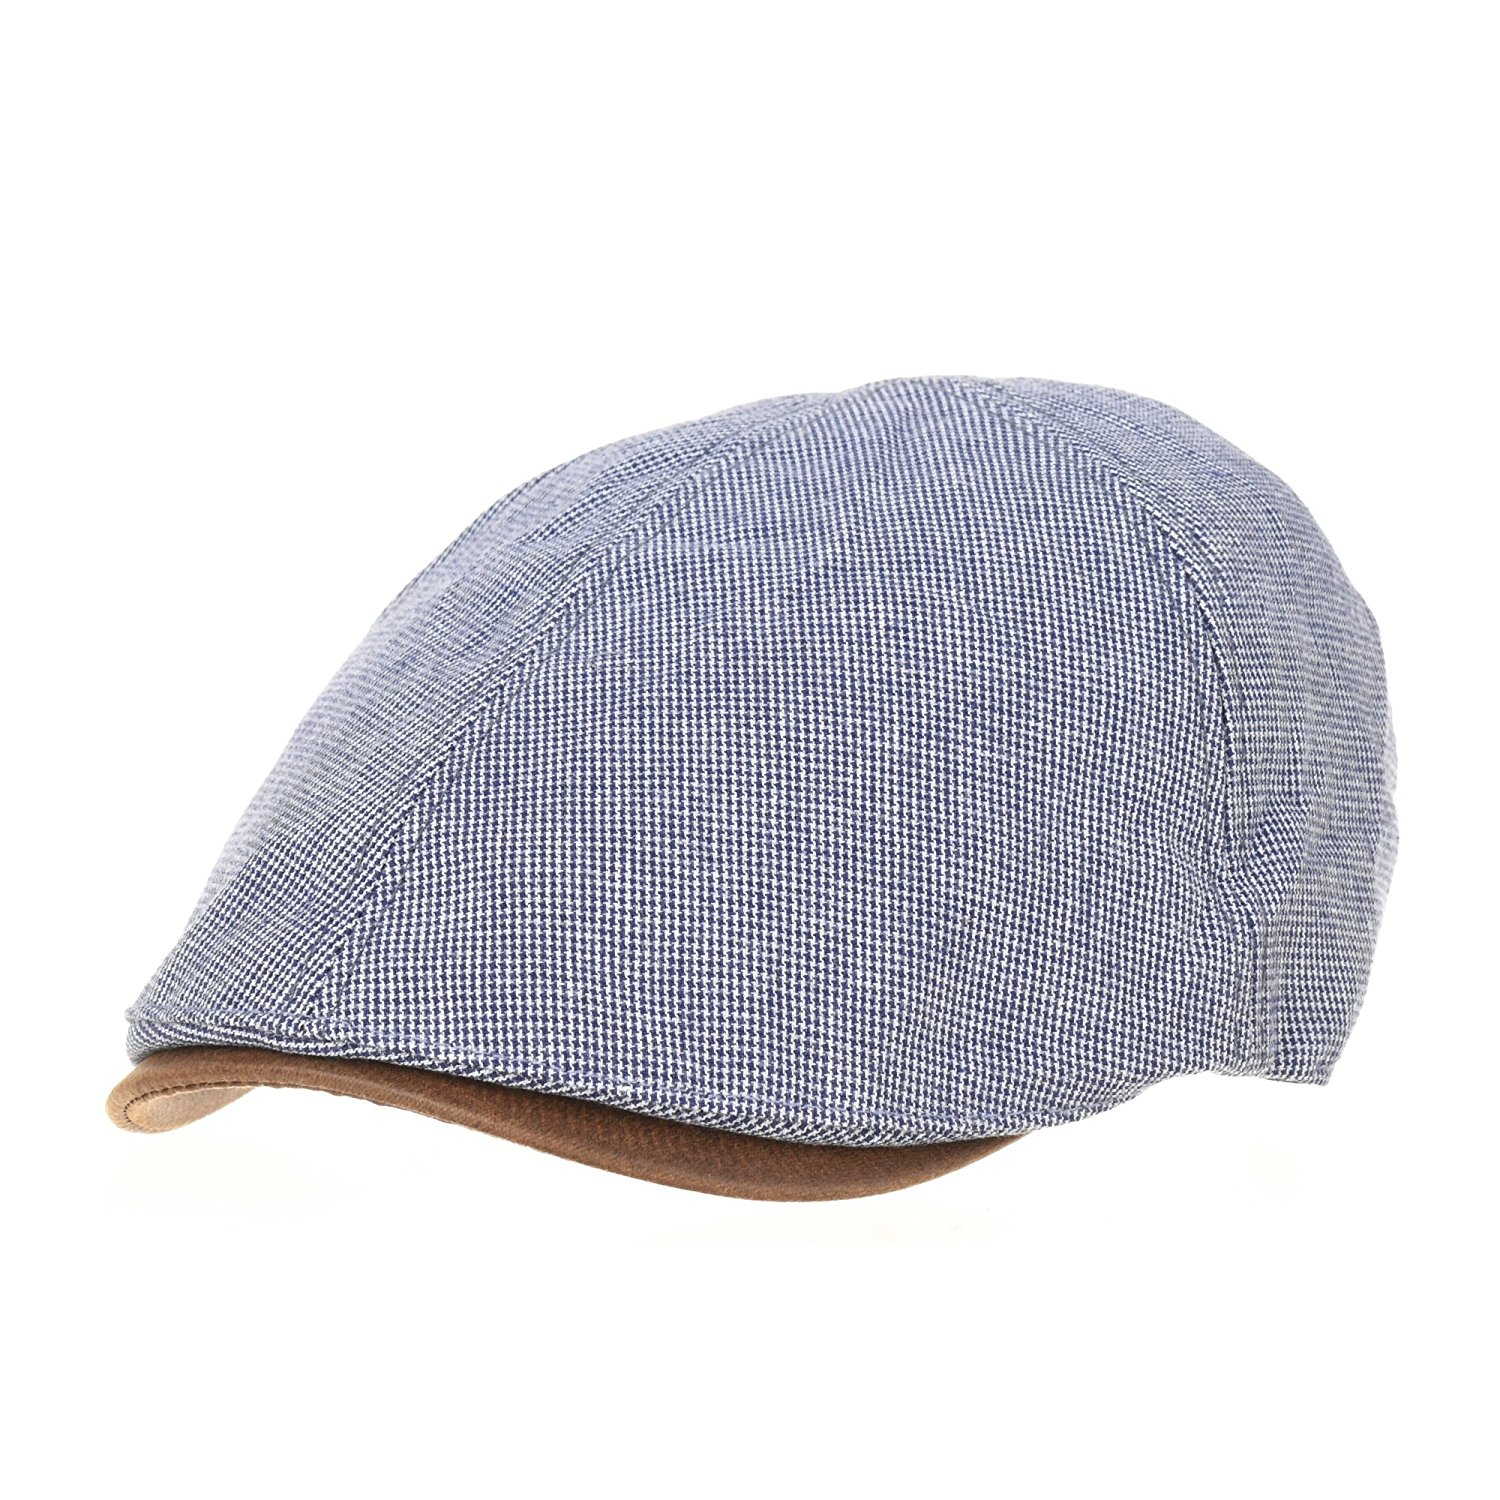 Get Quotations · WITHMOONS Trendy Houndstooth Pattern Cotton Newsboy Hat  Flat Cap SL3245 ecdffe8c36ce